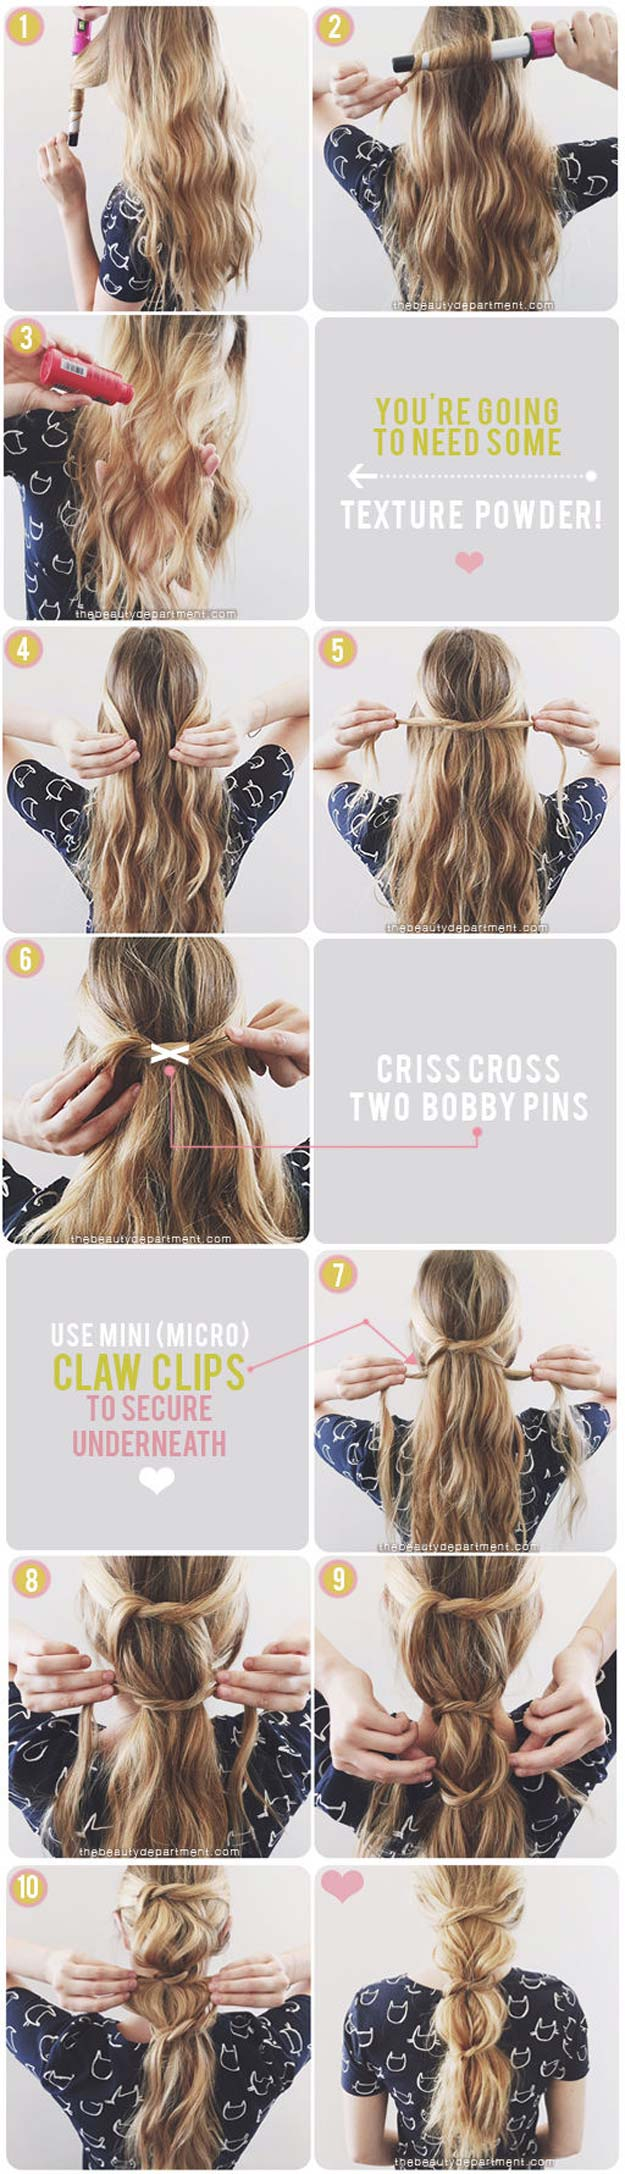 Best Hairstyles for Long Hair - Messy Knotted Ponytail - Step by Step Tutorials for Easy Curls, Updo, Half Up, Braids and Lazy Girl Looks. Prom Ideas, Special Occasion Hair and Braiding Instructions for Teens, Teenagers and Adults, Women and Girls http://diyprojectsforteens.com/best-hairstyles-long-hair